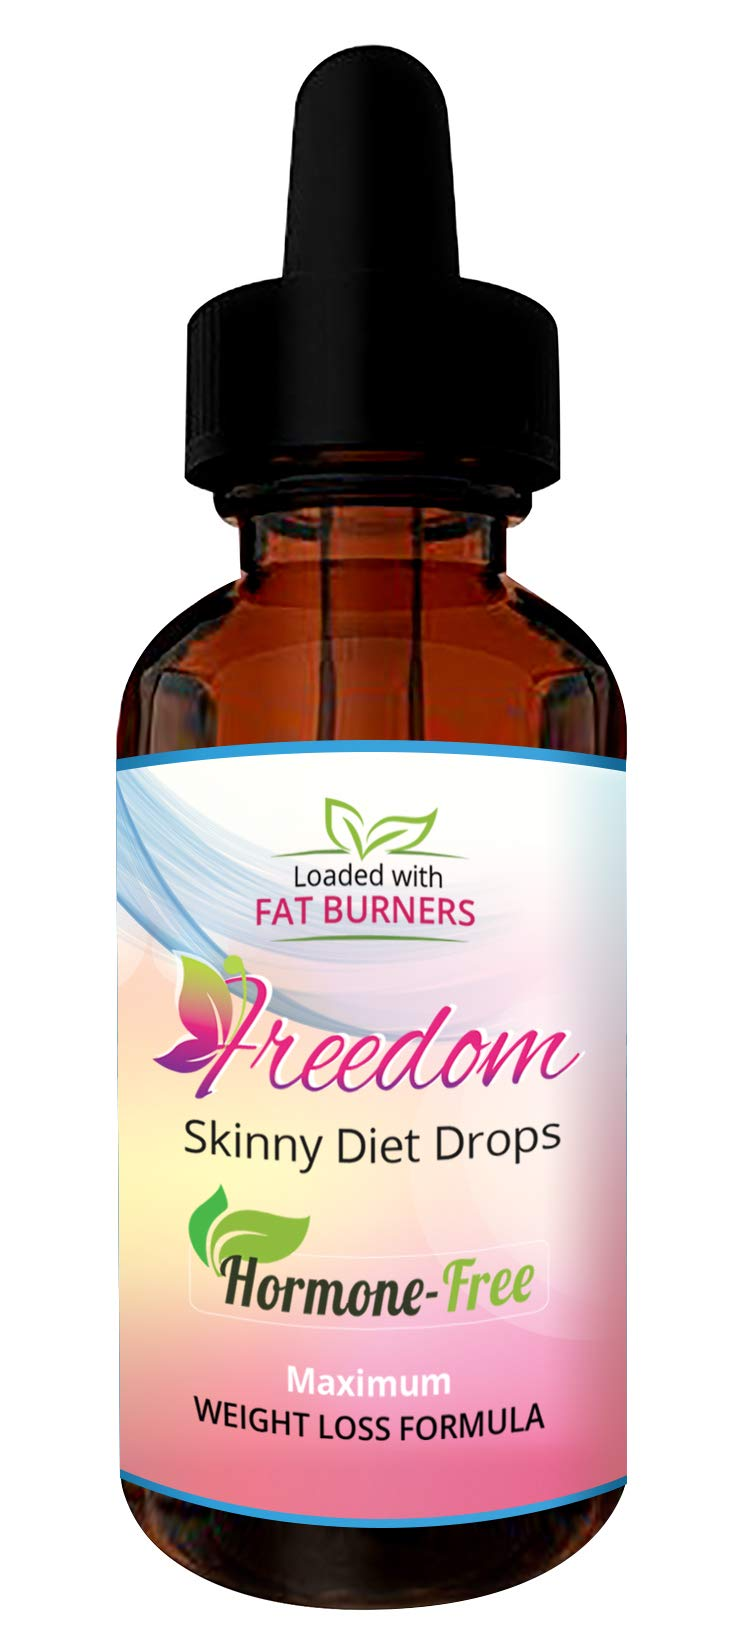 Freedom Weight Loss Diet Drops - Fat Burning Drops Hormone Free 2 oz Bottle.